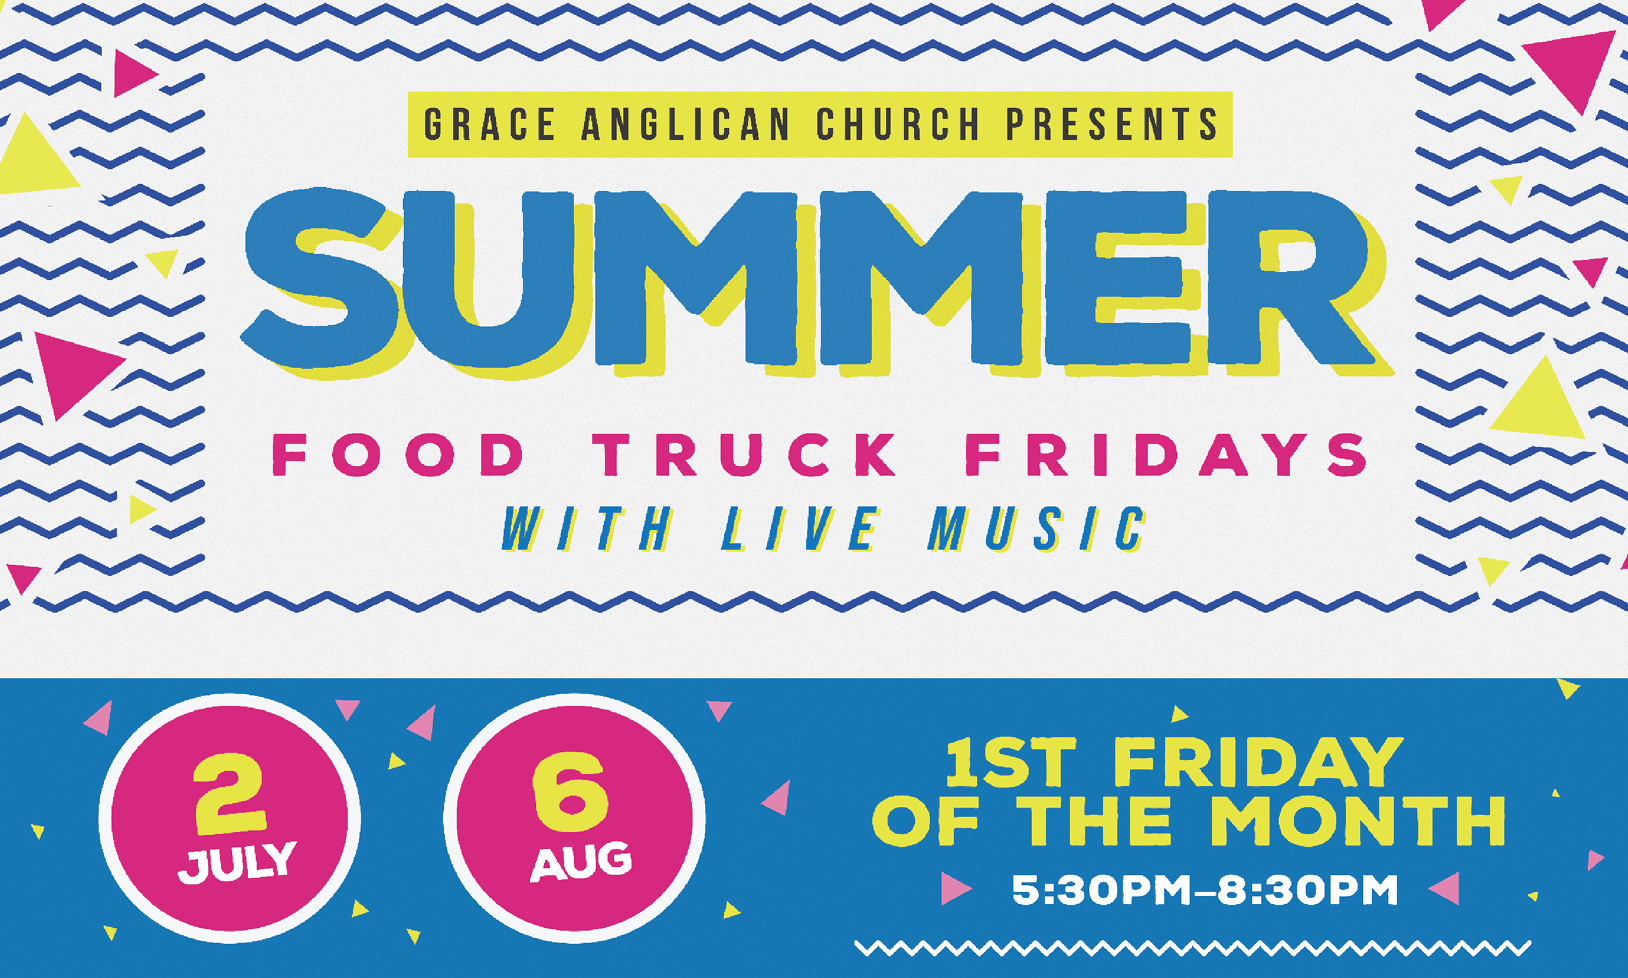 Next Food Truck Friday: July 2nd